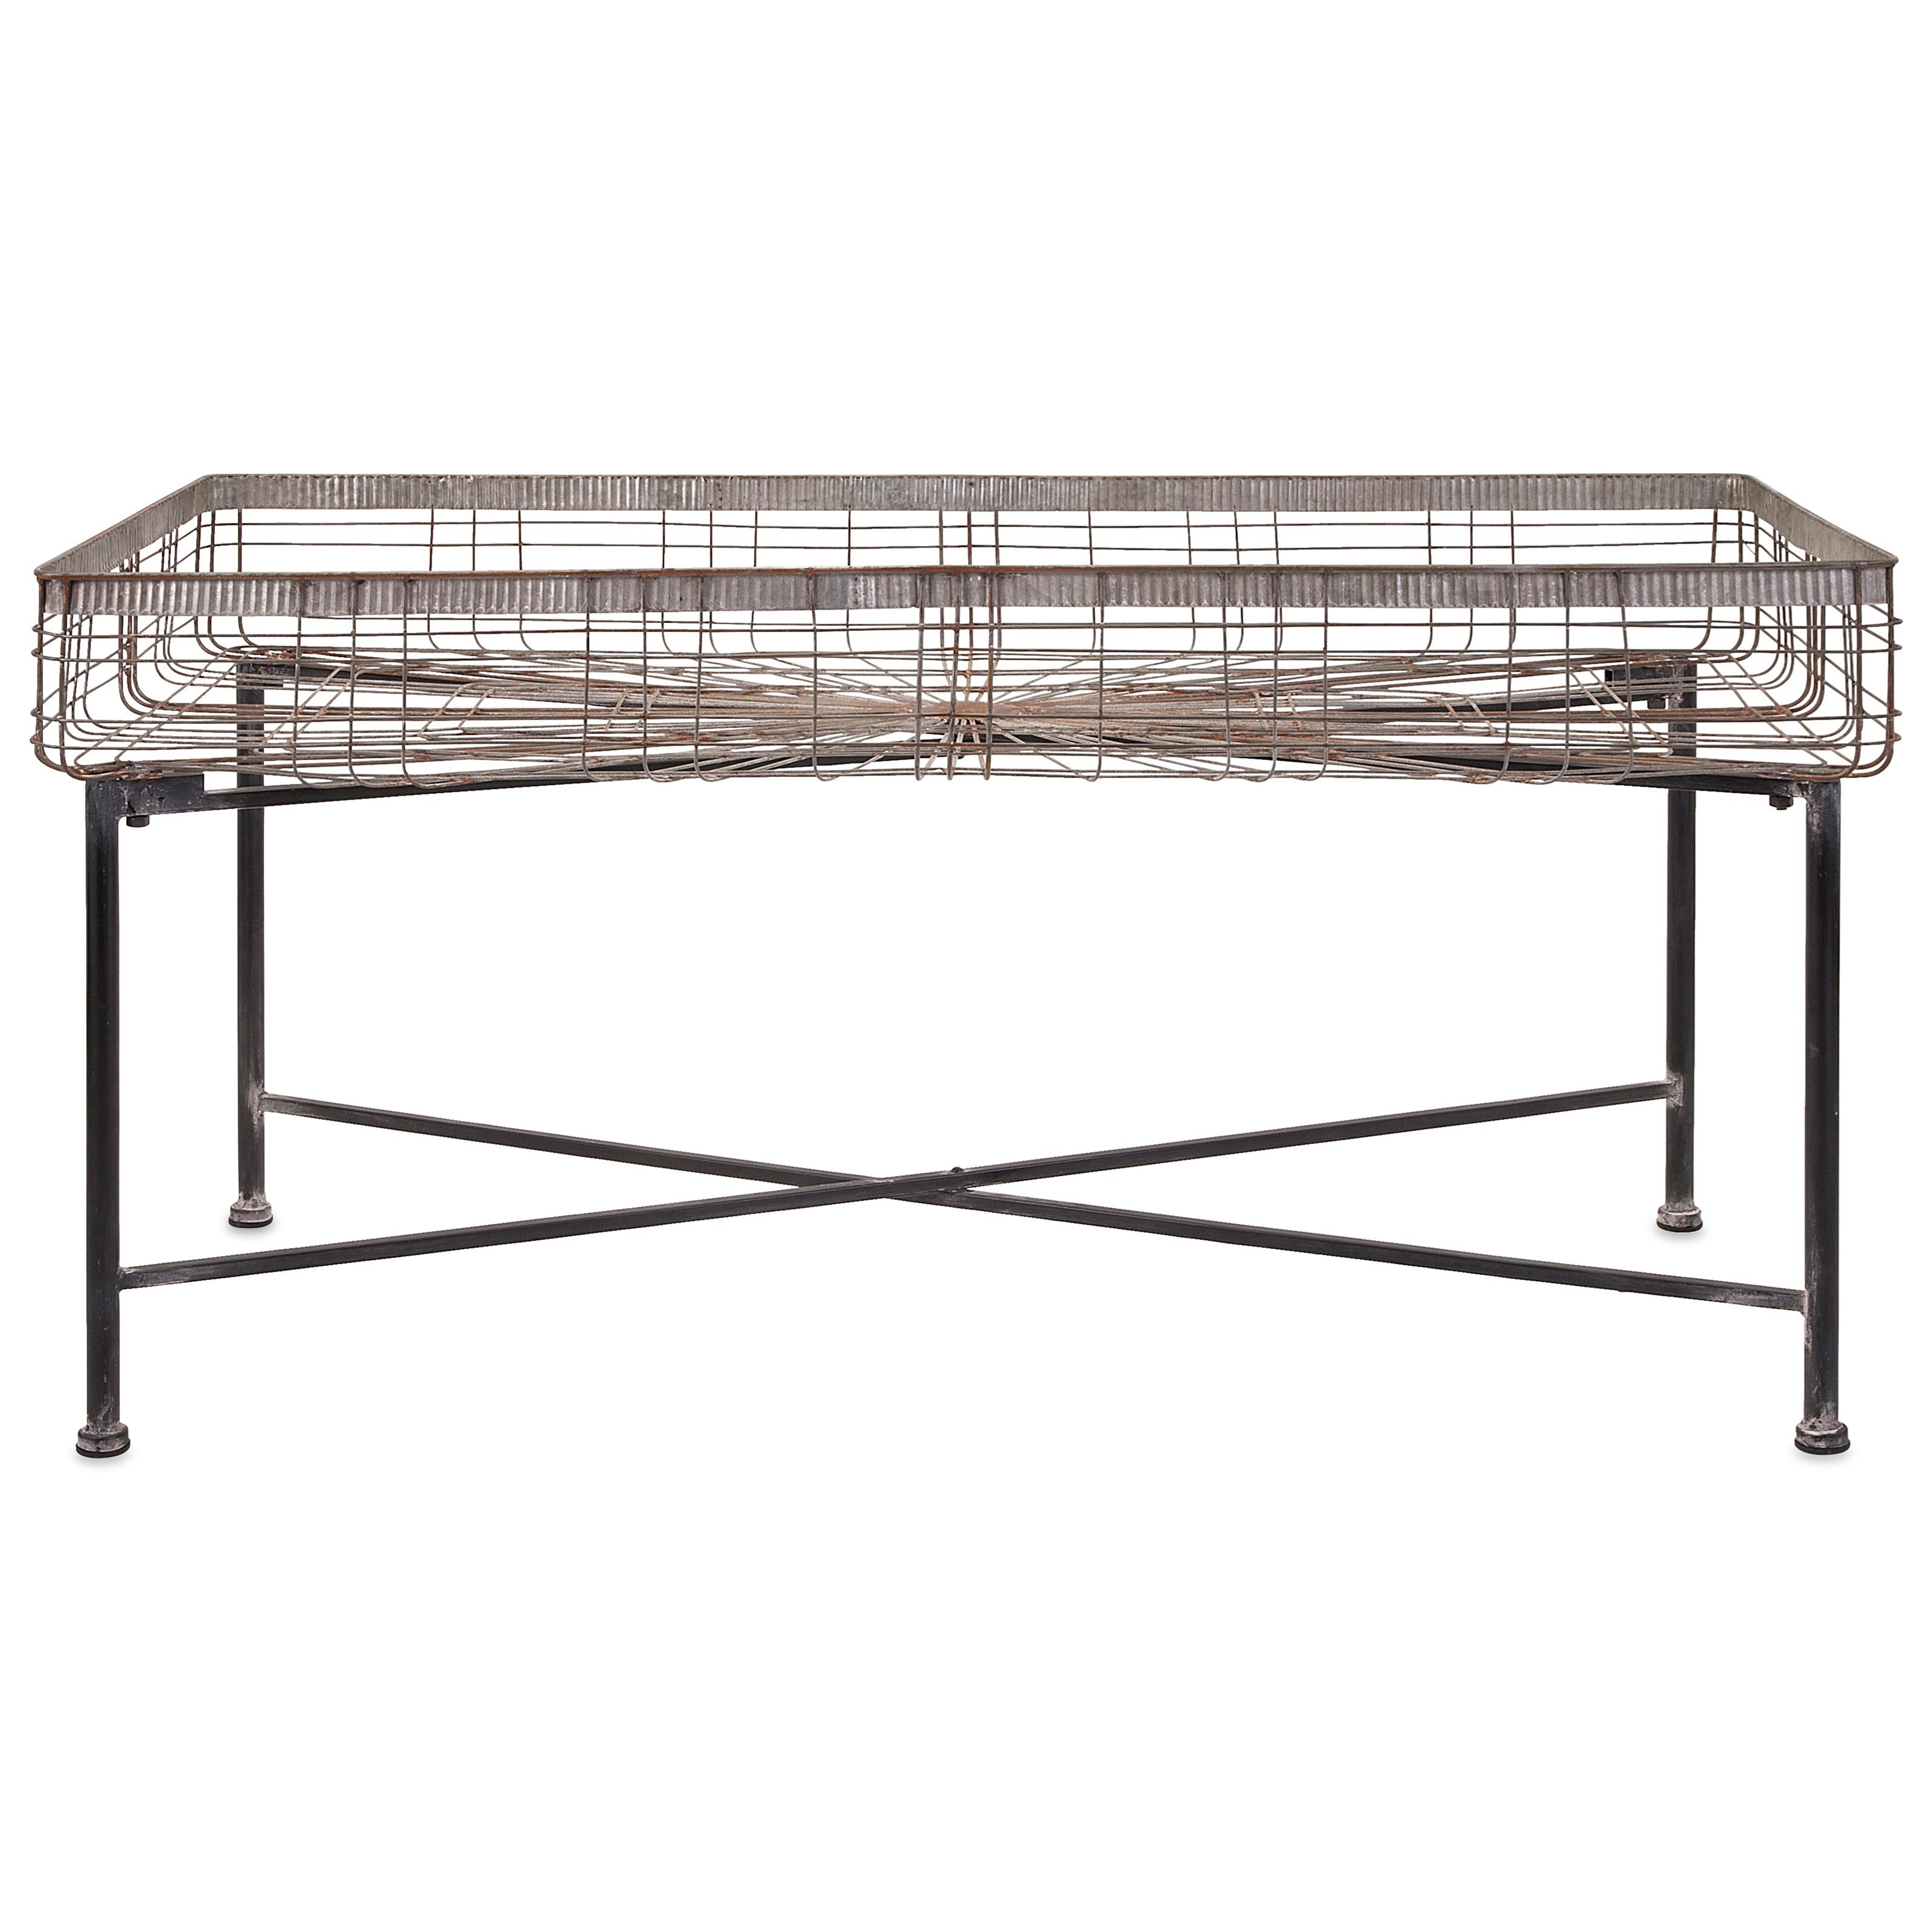 Accessories Pitzer Rectangle Wire Plant Stand by IMAX Worldwide Home at Alison Craig Home Furnishings